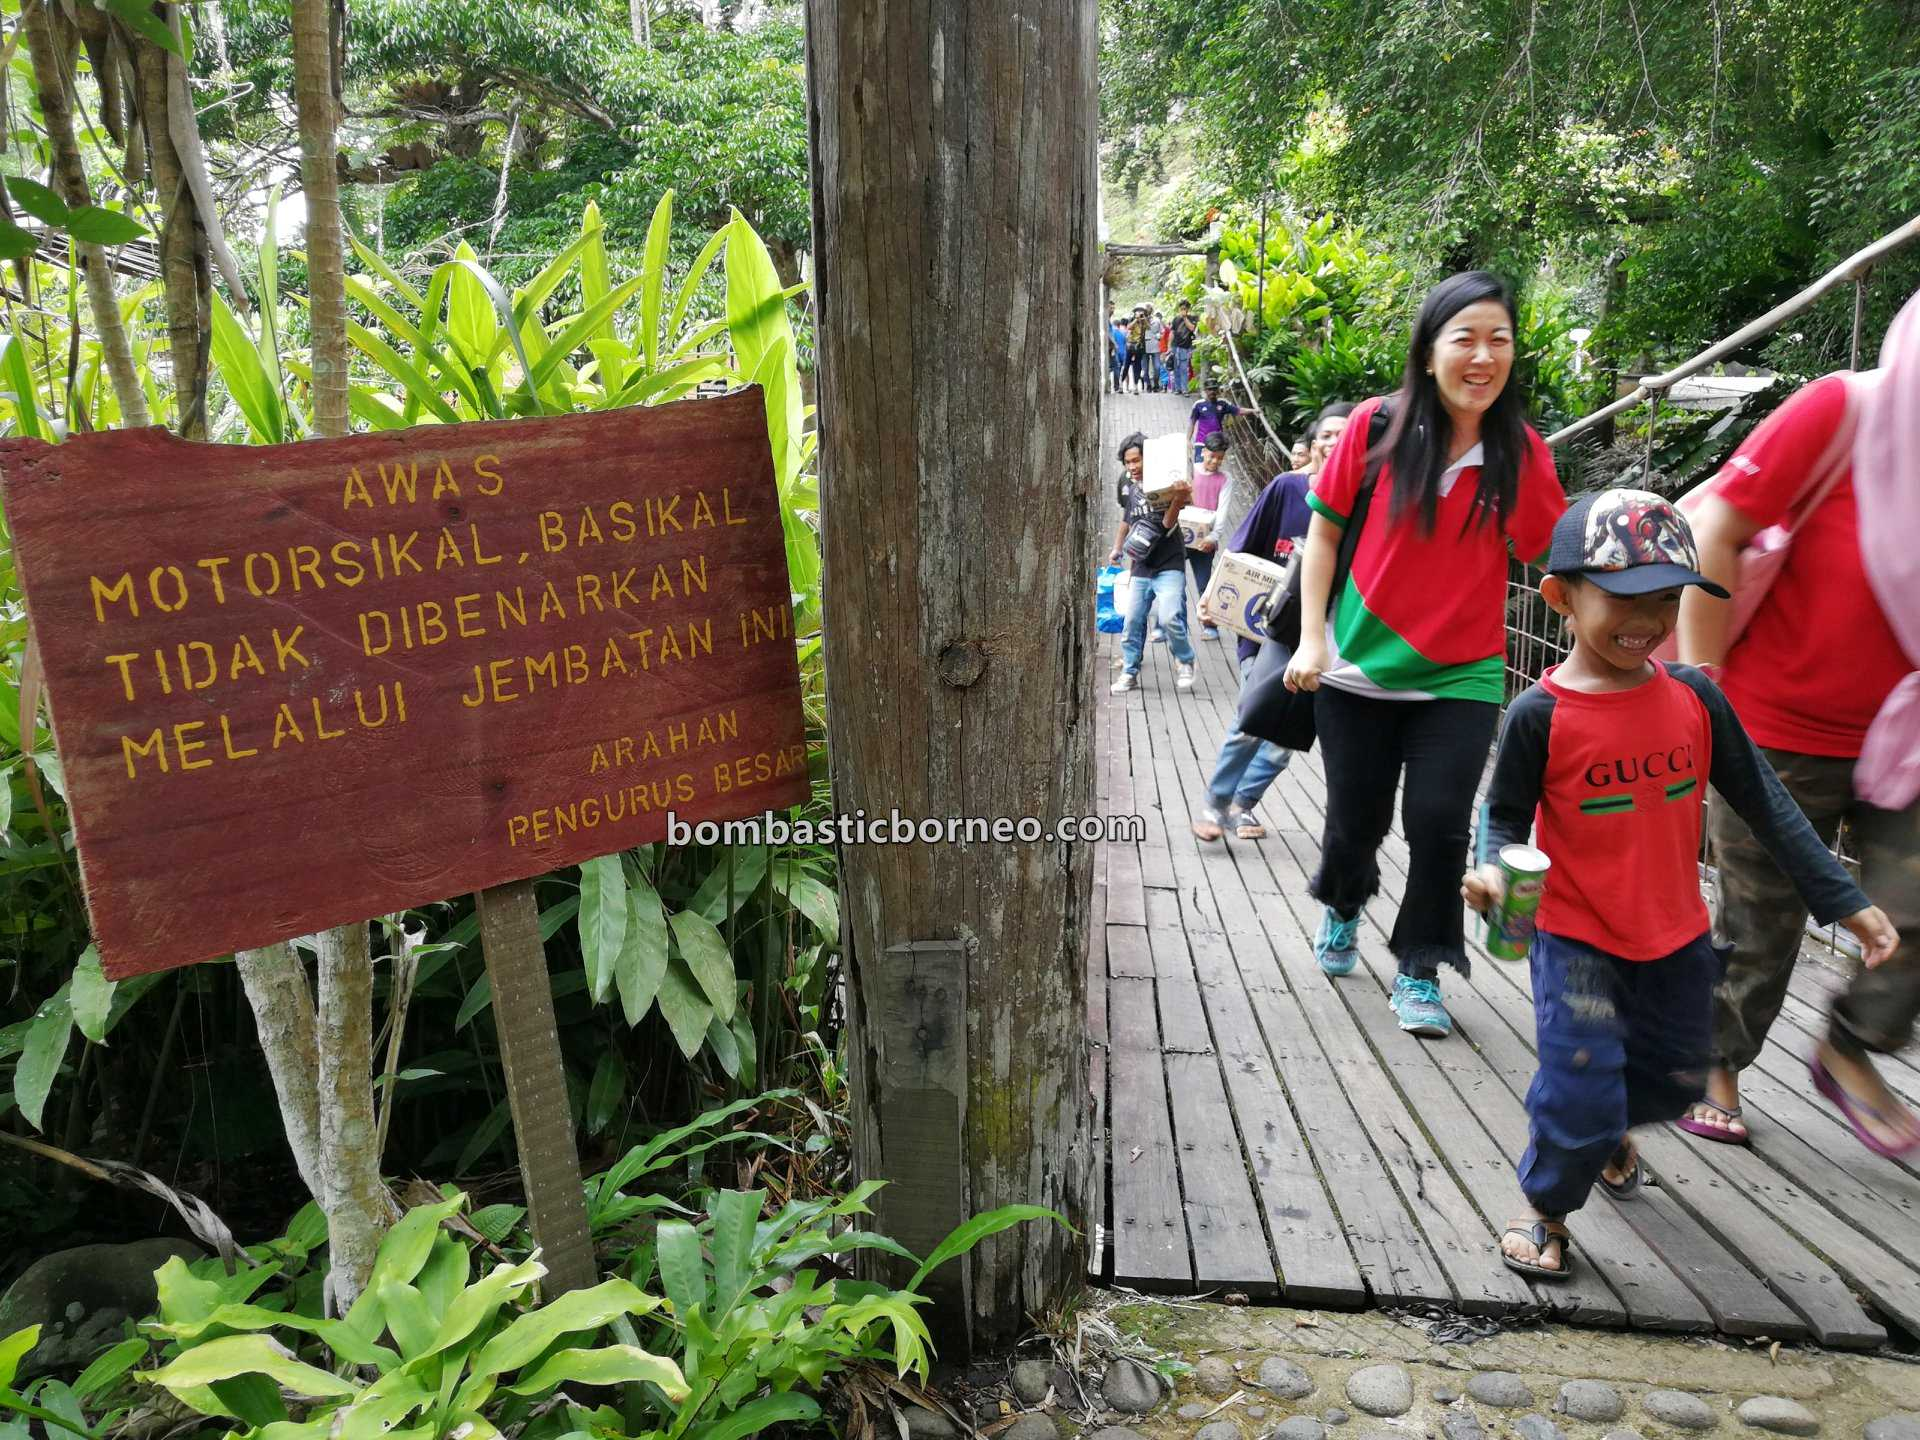 canopy bridge, chalets, lodge, outdoor, backpackers, recreational park, Malaysia, Sabah, tourism, tourist attraction, travel guide, Trans Borneo, 婆罗洲游踪, 马来西亚沙巴, 斗湖生态度假村